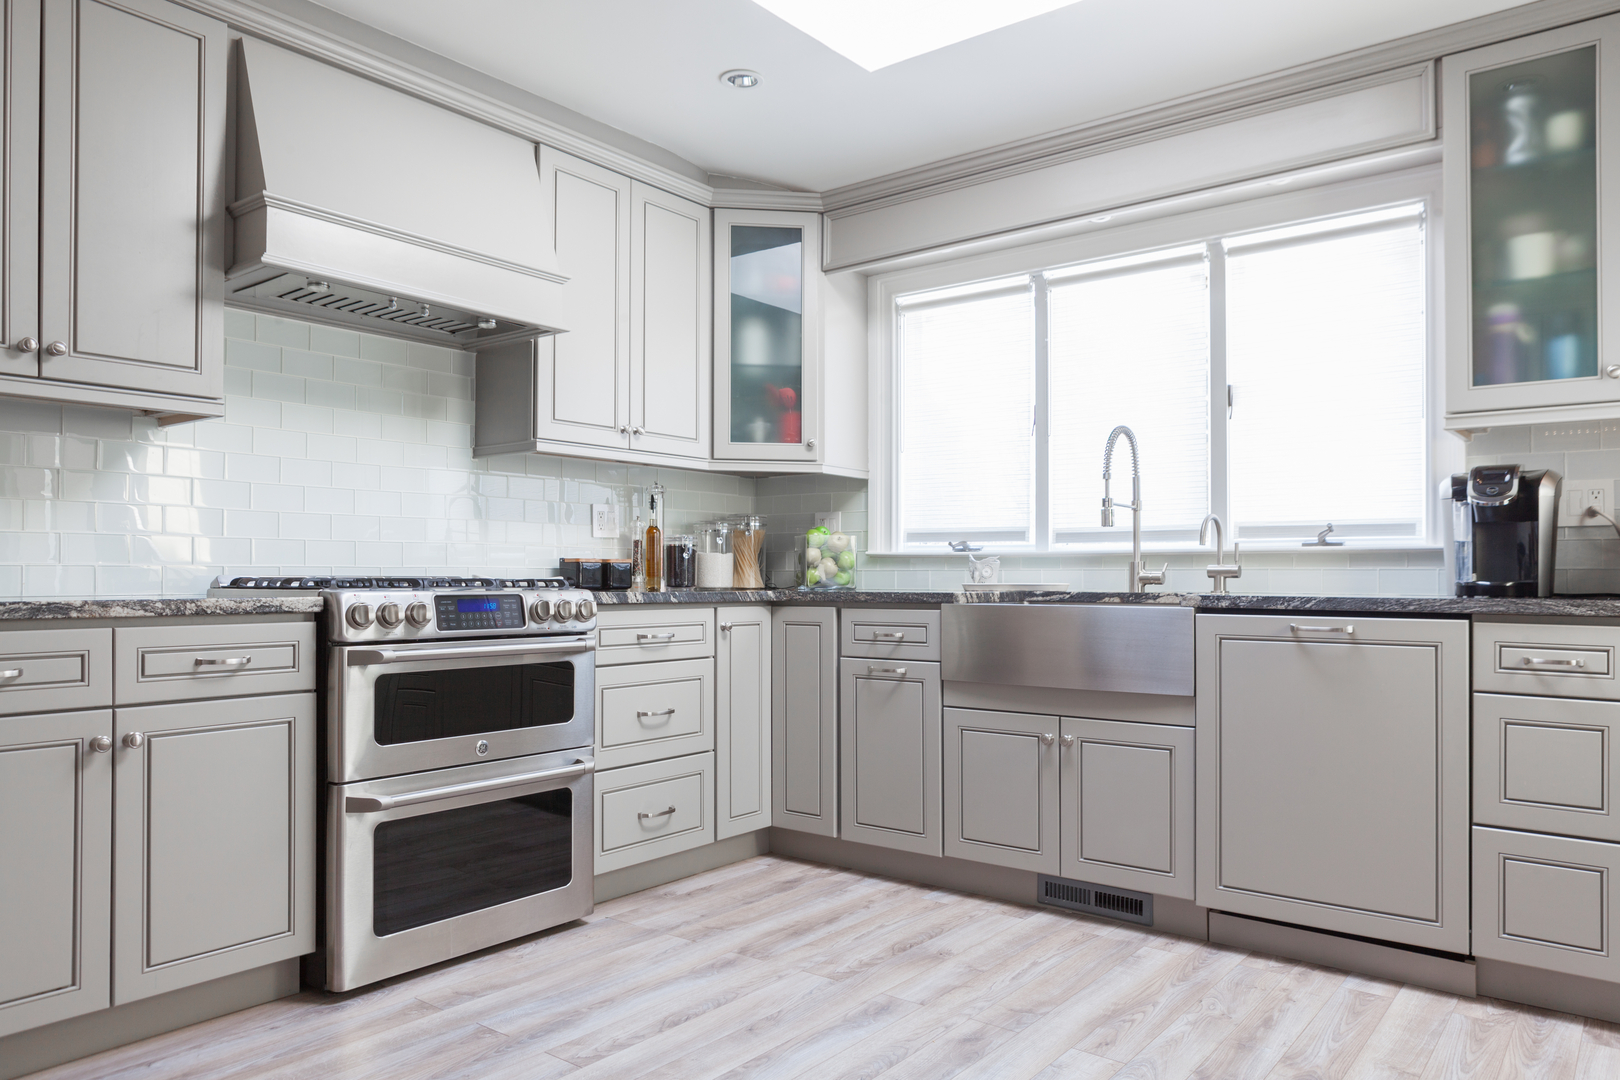 gallery: kitchen cabinets - j&k cabinetry